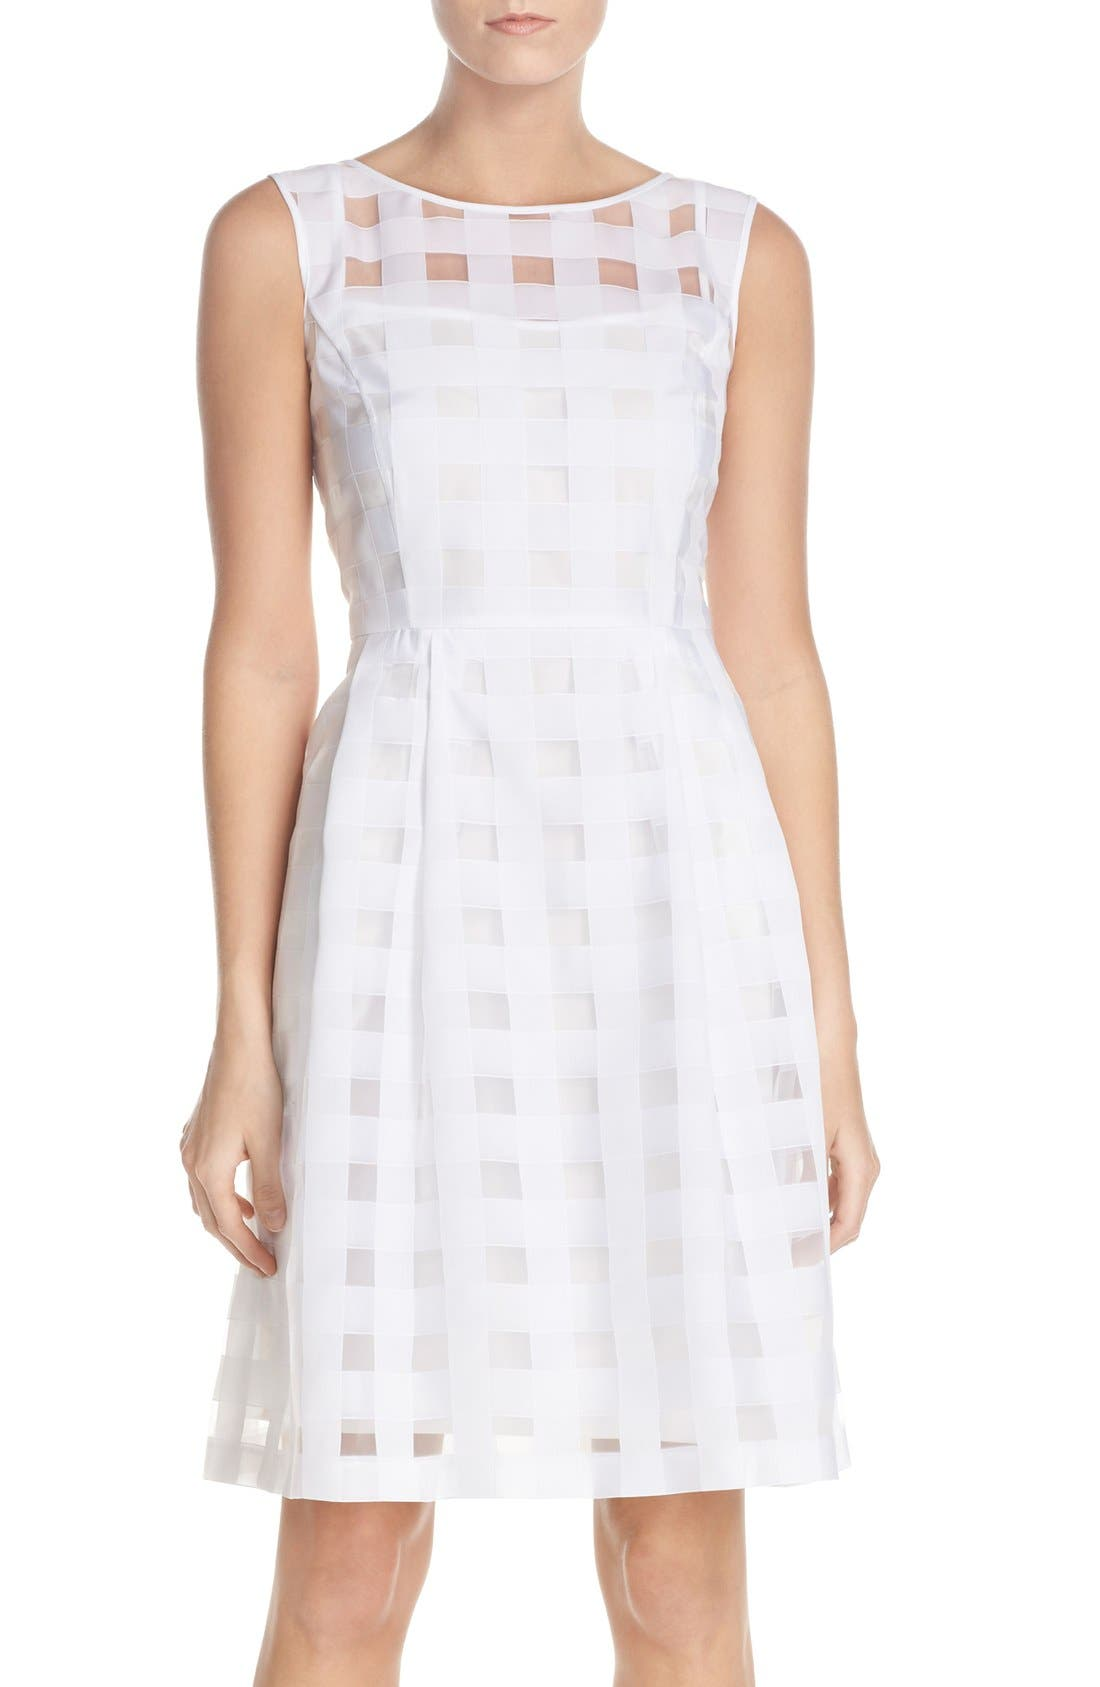 Alternate Image 1 Selected - Ellen Tracy Windowpane Check Fit & Flare Dress (Regular & Petite)